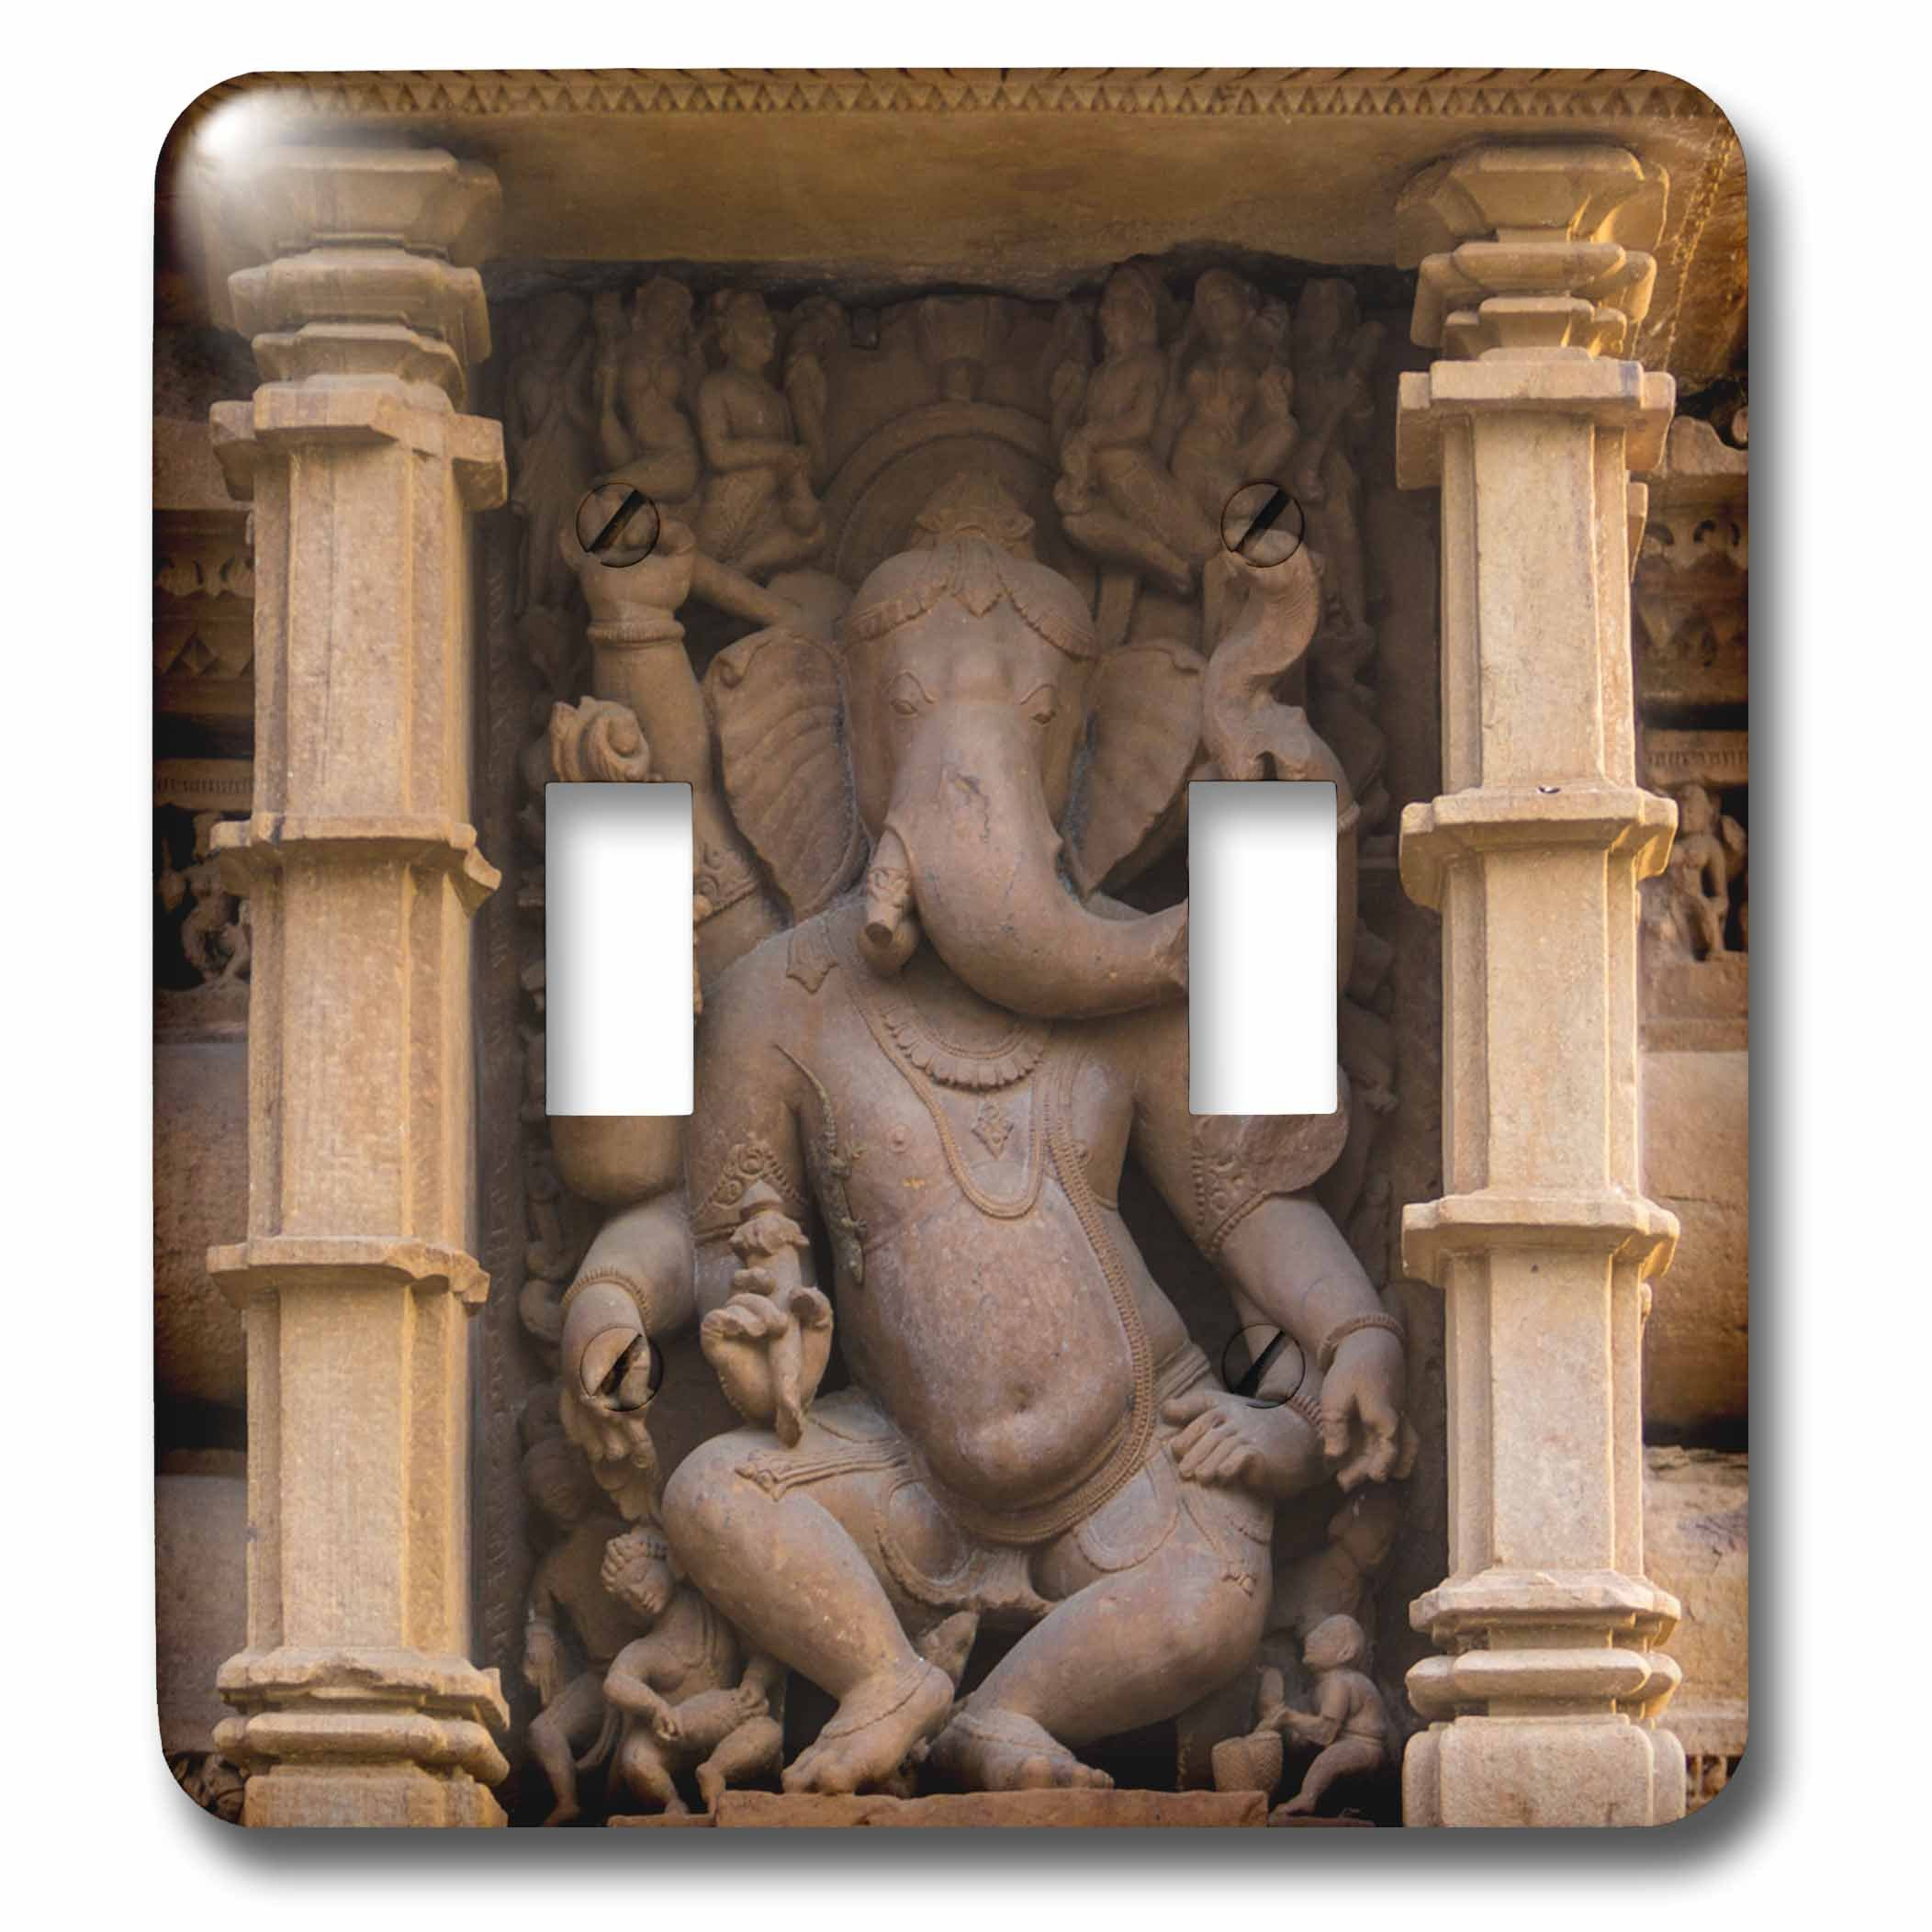 3dRose Danita Delimont - Temples - India. Hindu temples at Khajuraho, elephant deity carving. - Light Switch Covers - double toggle switch (lsp_276793_2)